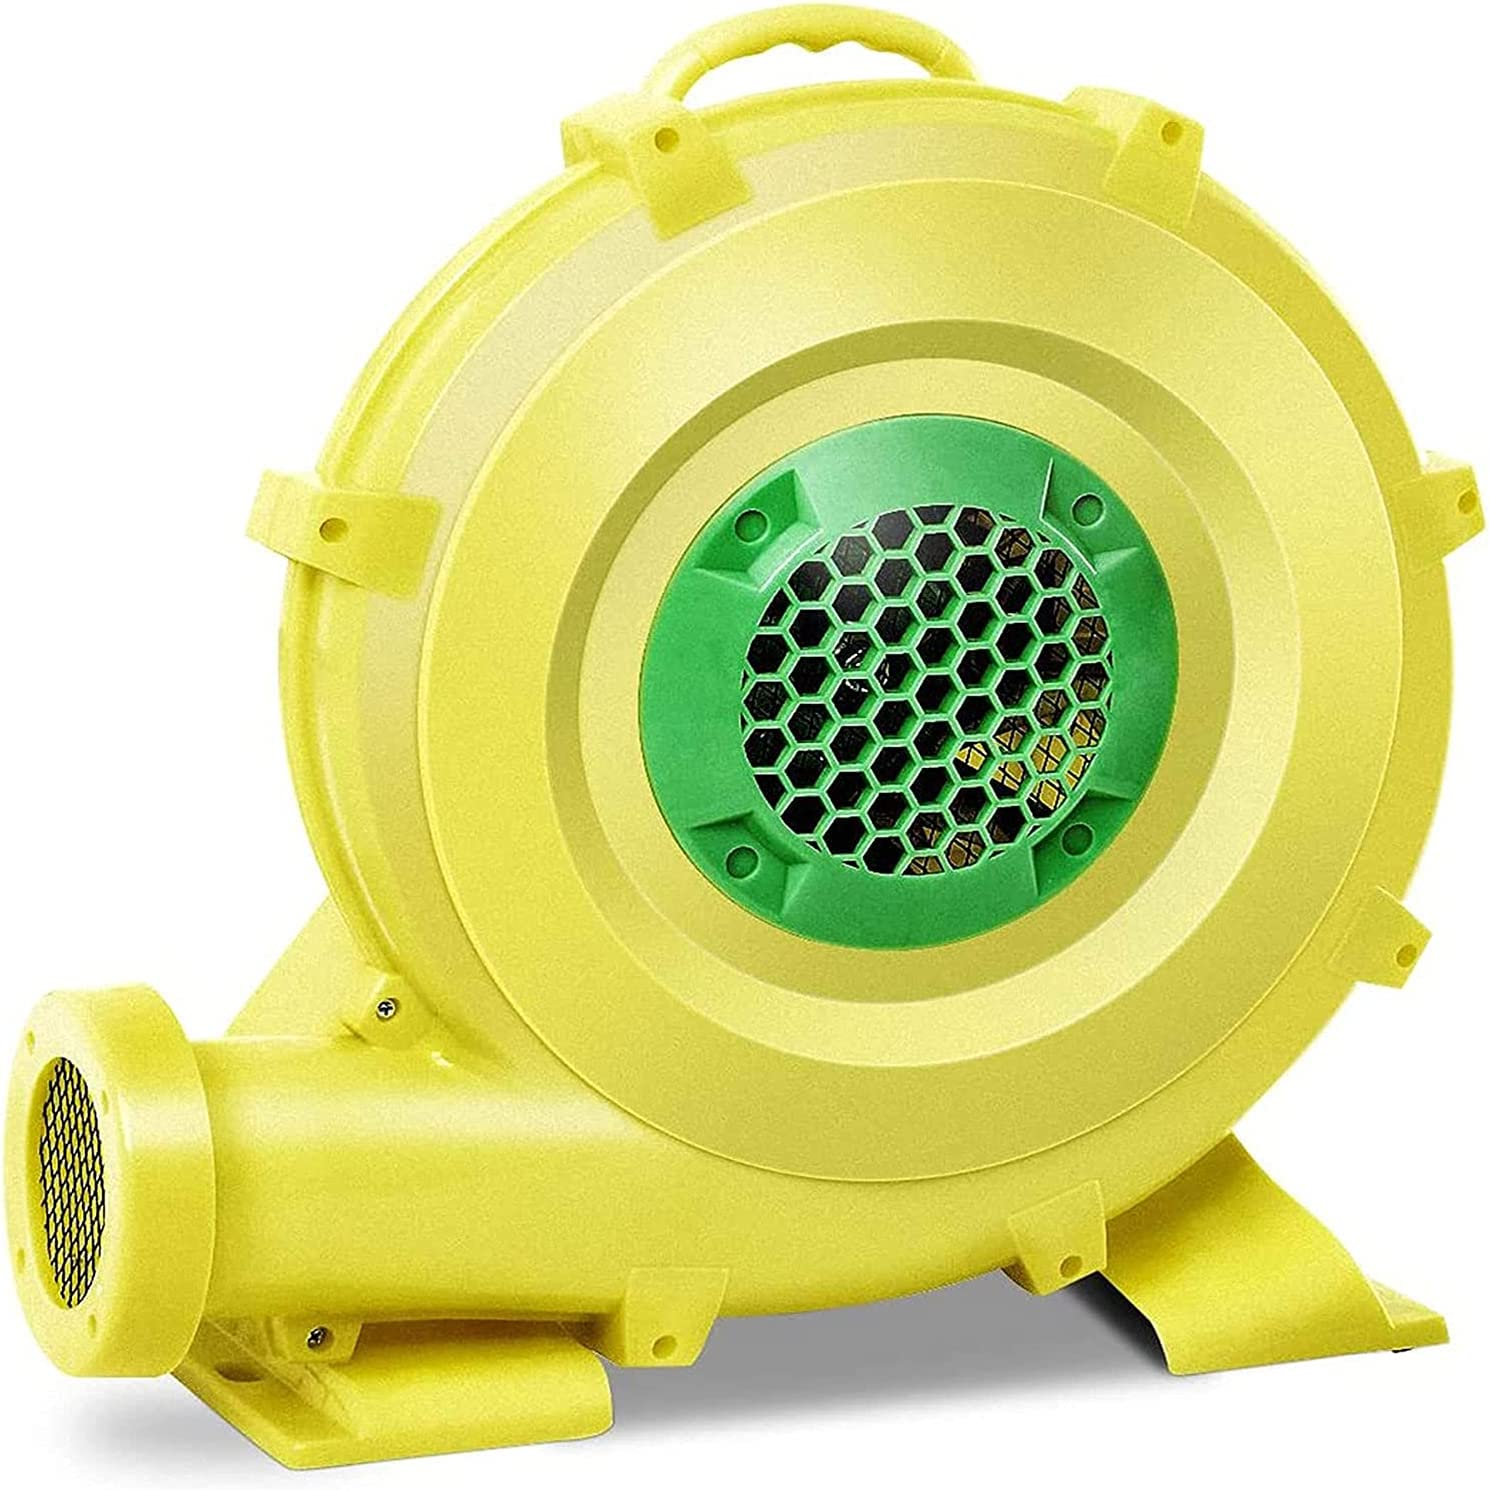 ALWWL 480W Inflatable Bouncer Blower Infla Pump Fan Air Super beauty product Special sale item restock quality top